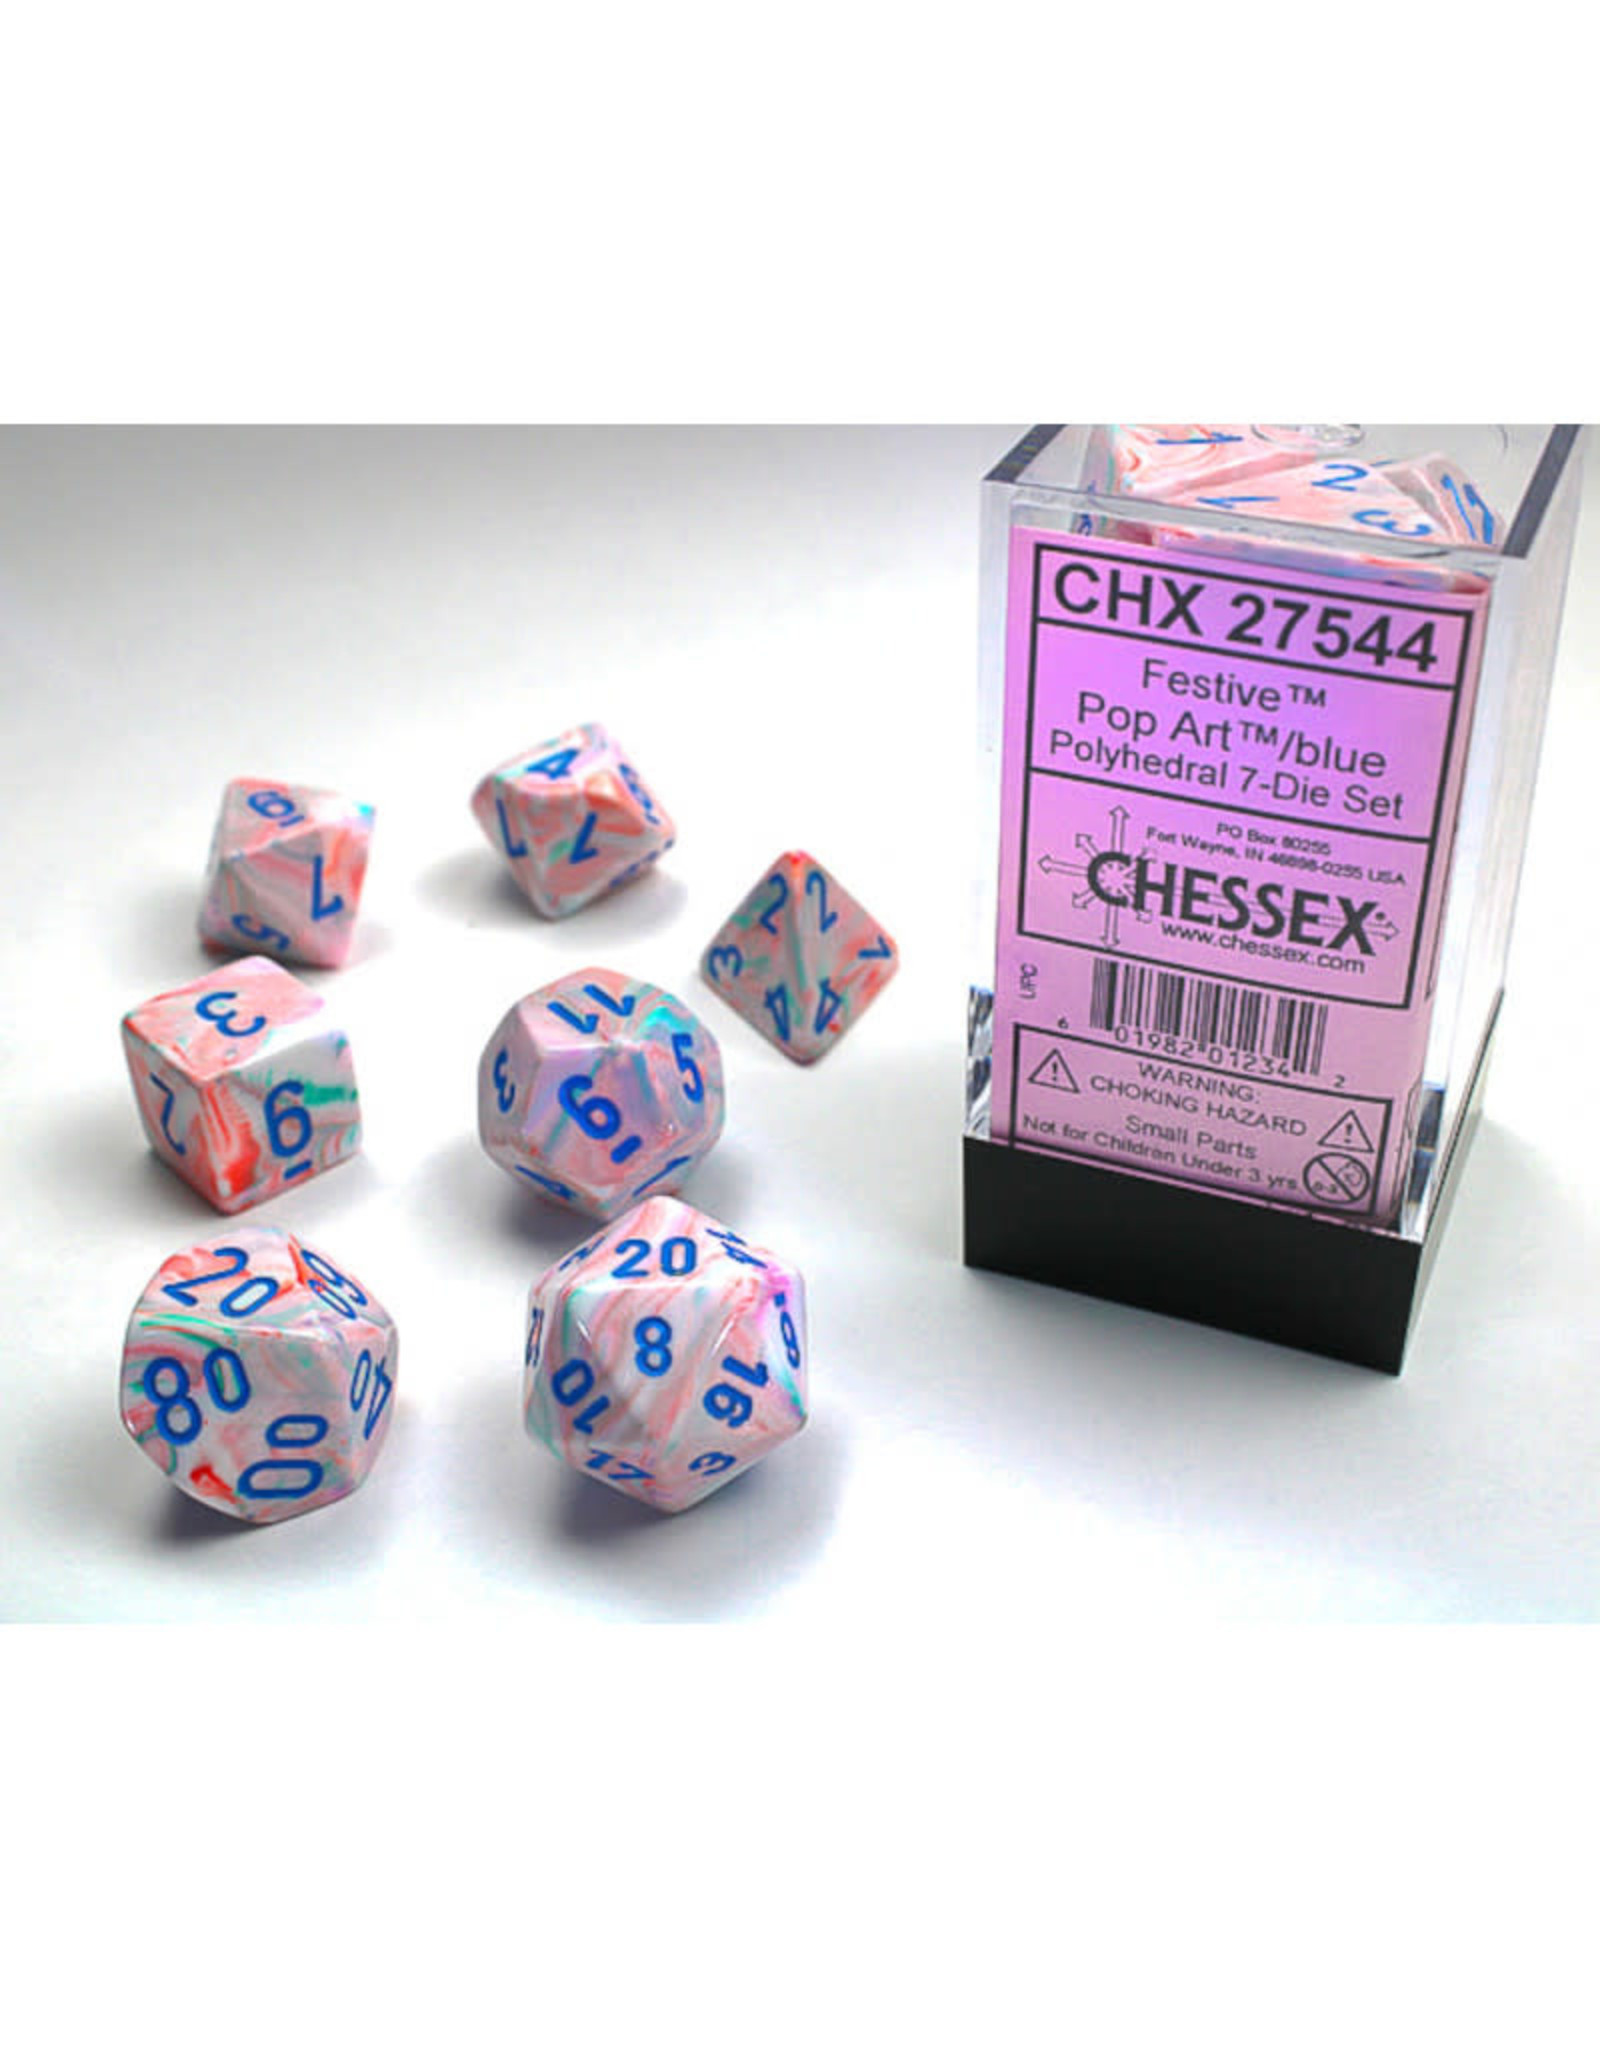 Chessex Polyhedral Dice Set: Festive Pop Art/Blue (7)